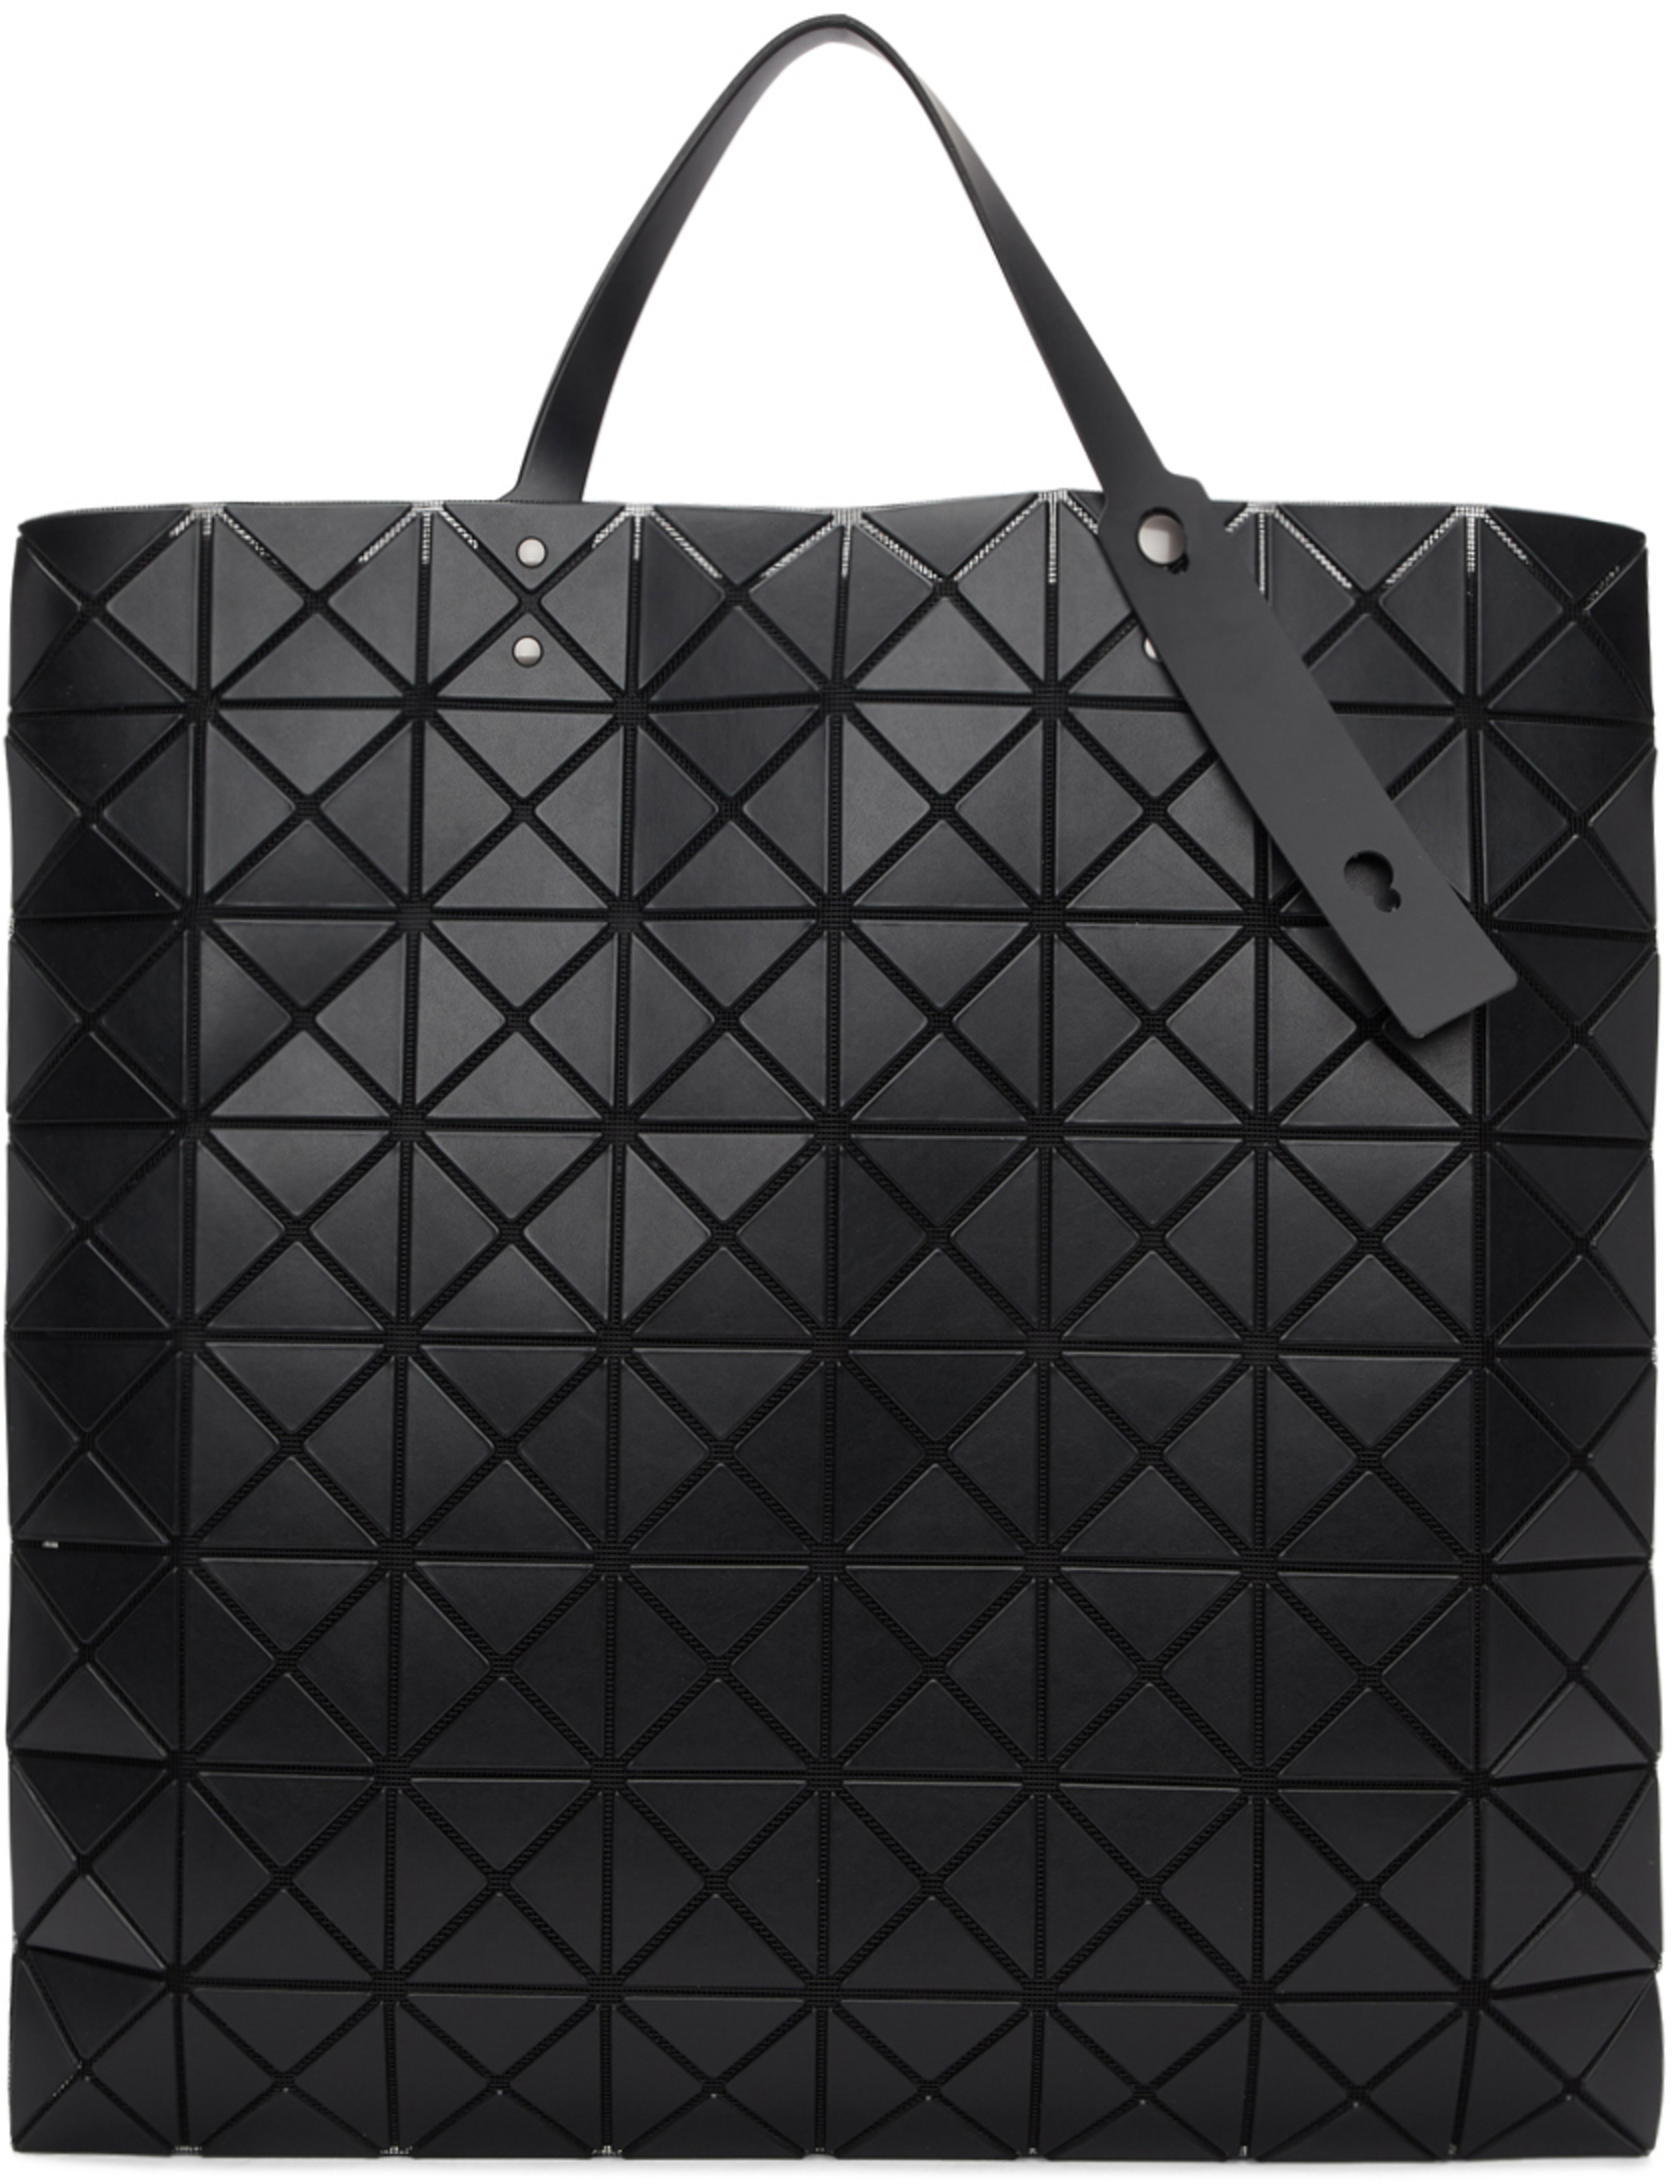 baa0121318 Issey Miyake BAO BAO Prism Shiny Large Tote Source · B Town s travel it bag